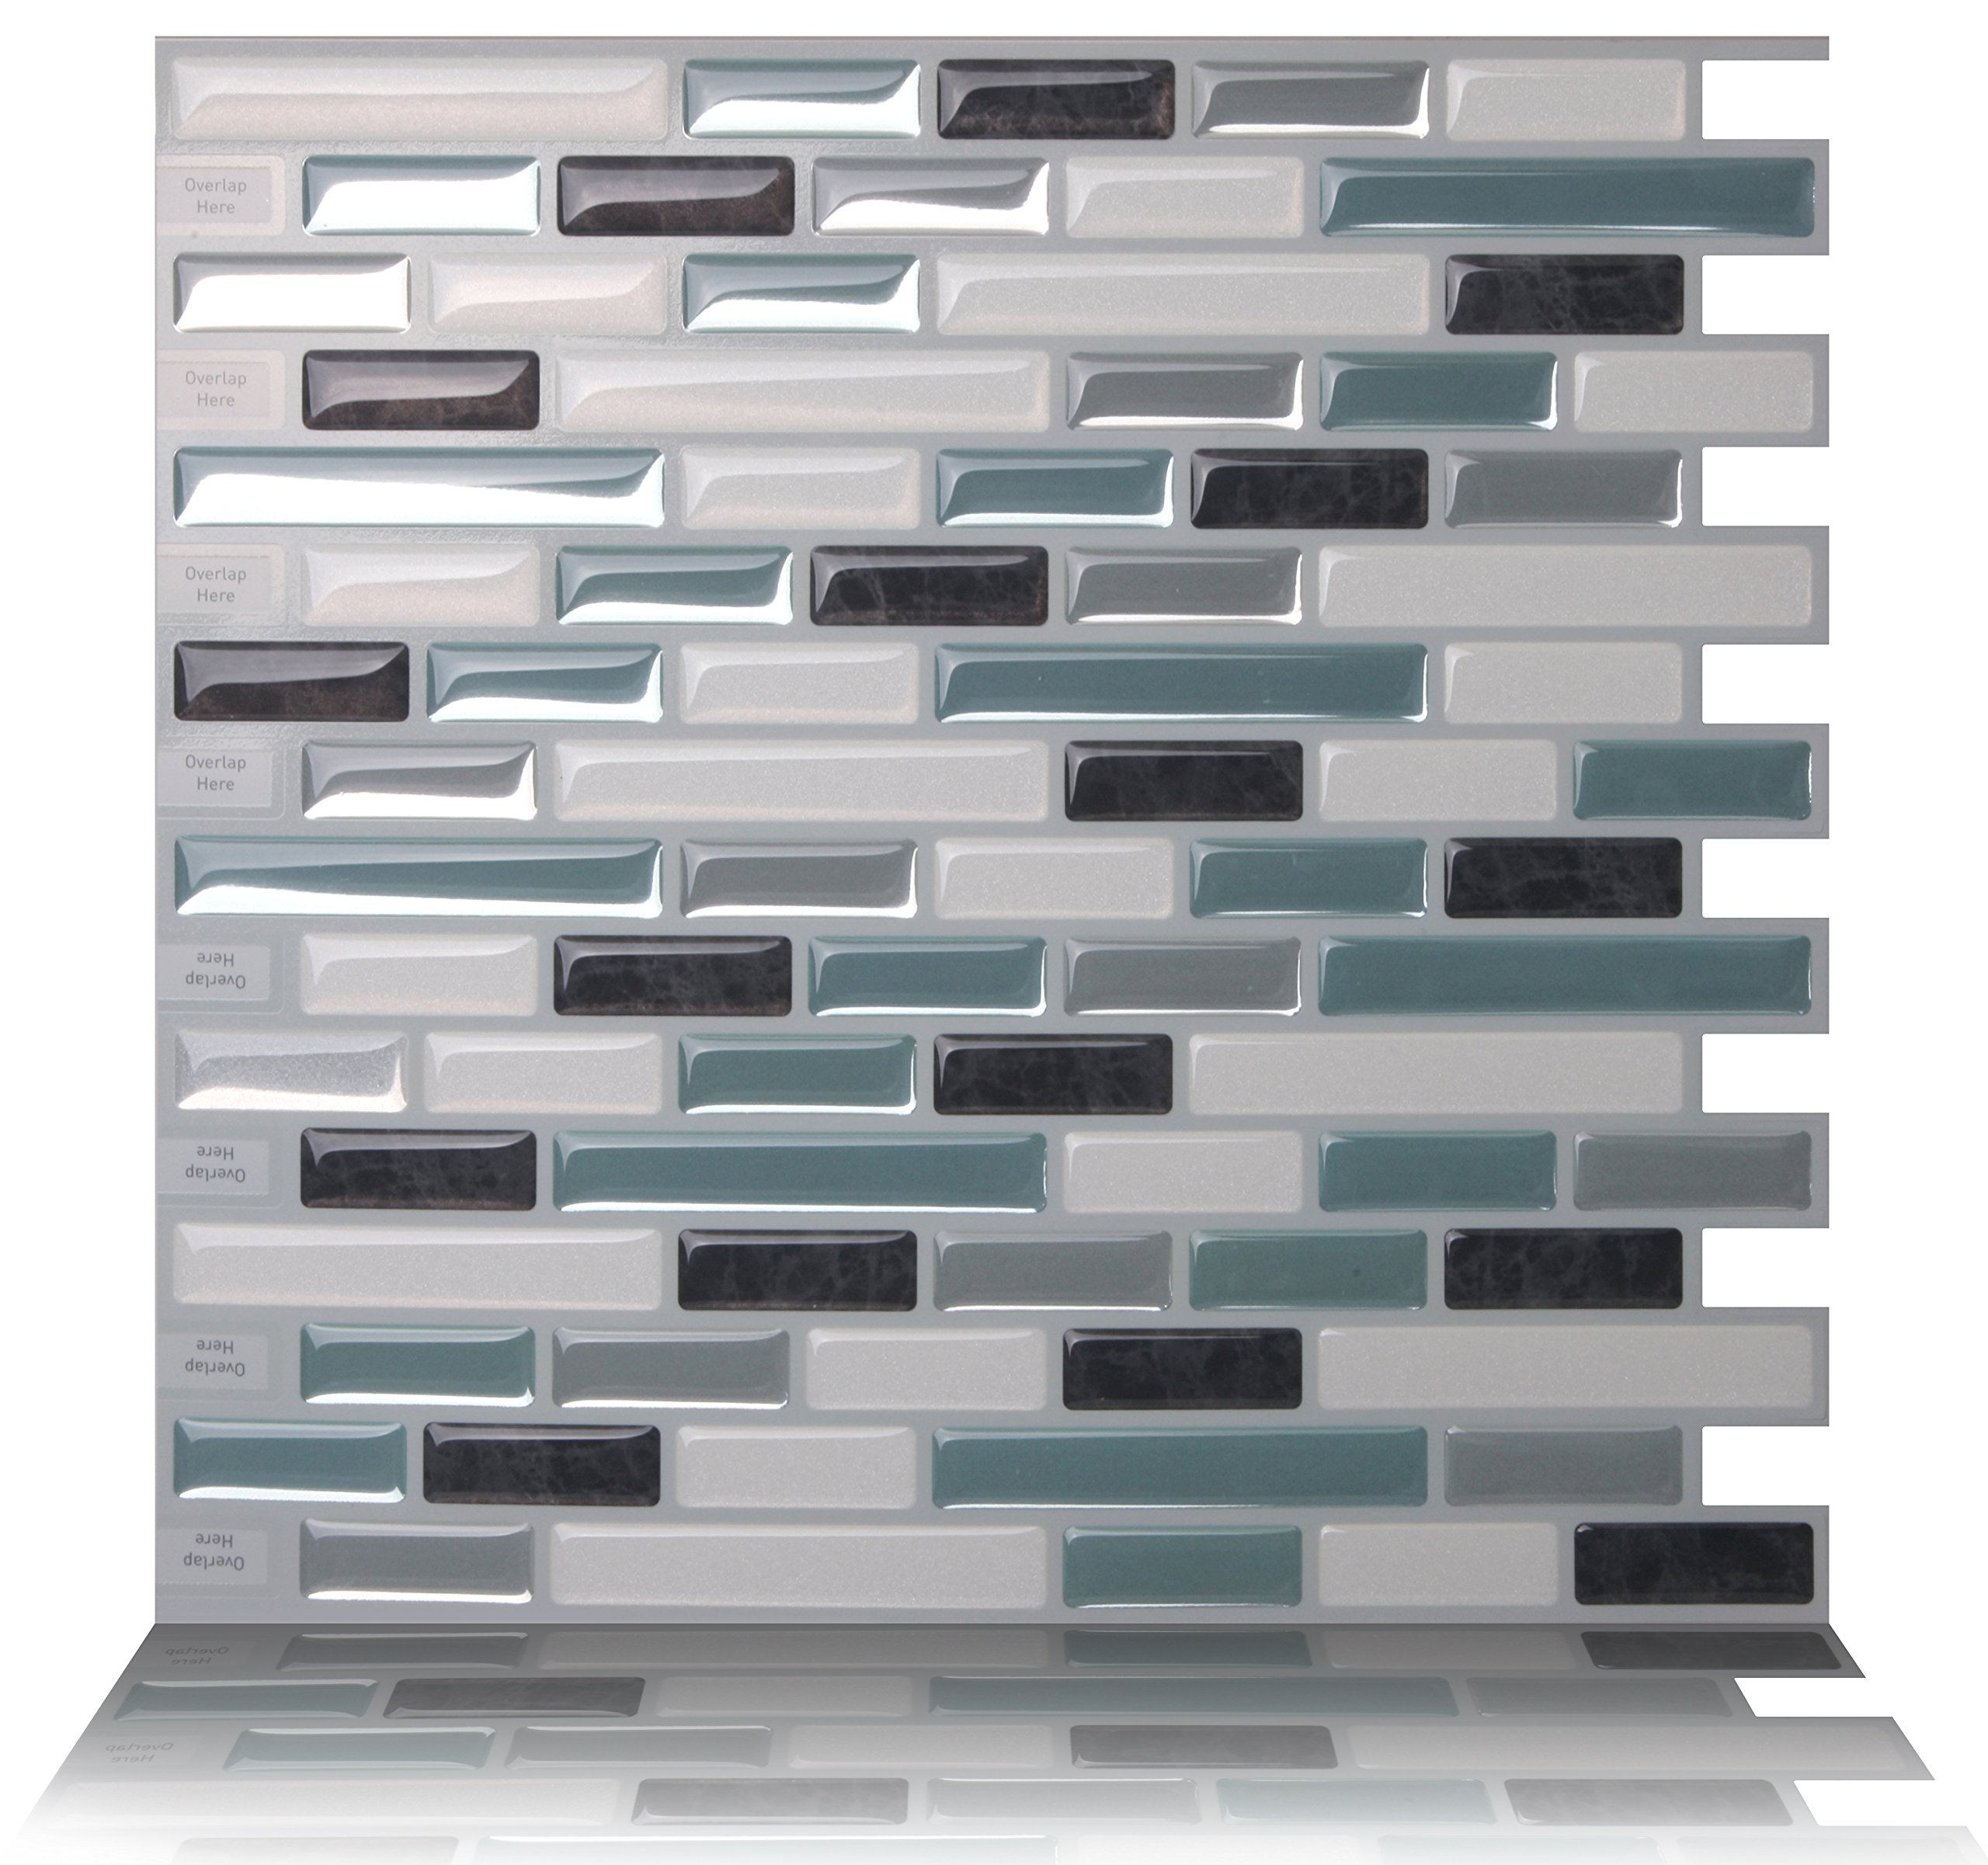 Tic Tac Tiles Anti-mold Peel and Stick Wall Tile in Como Marrone (10 Tiles)